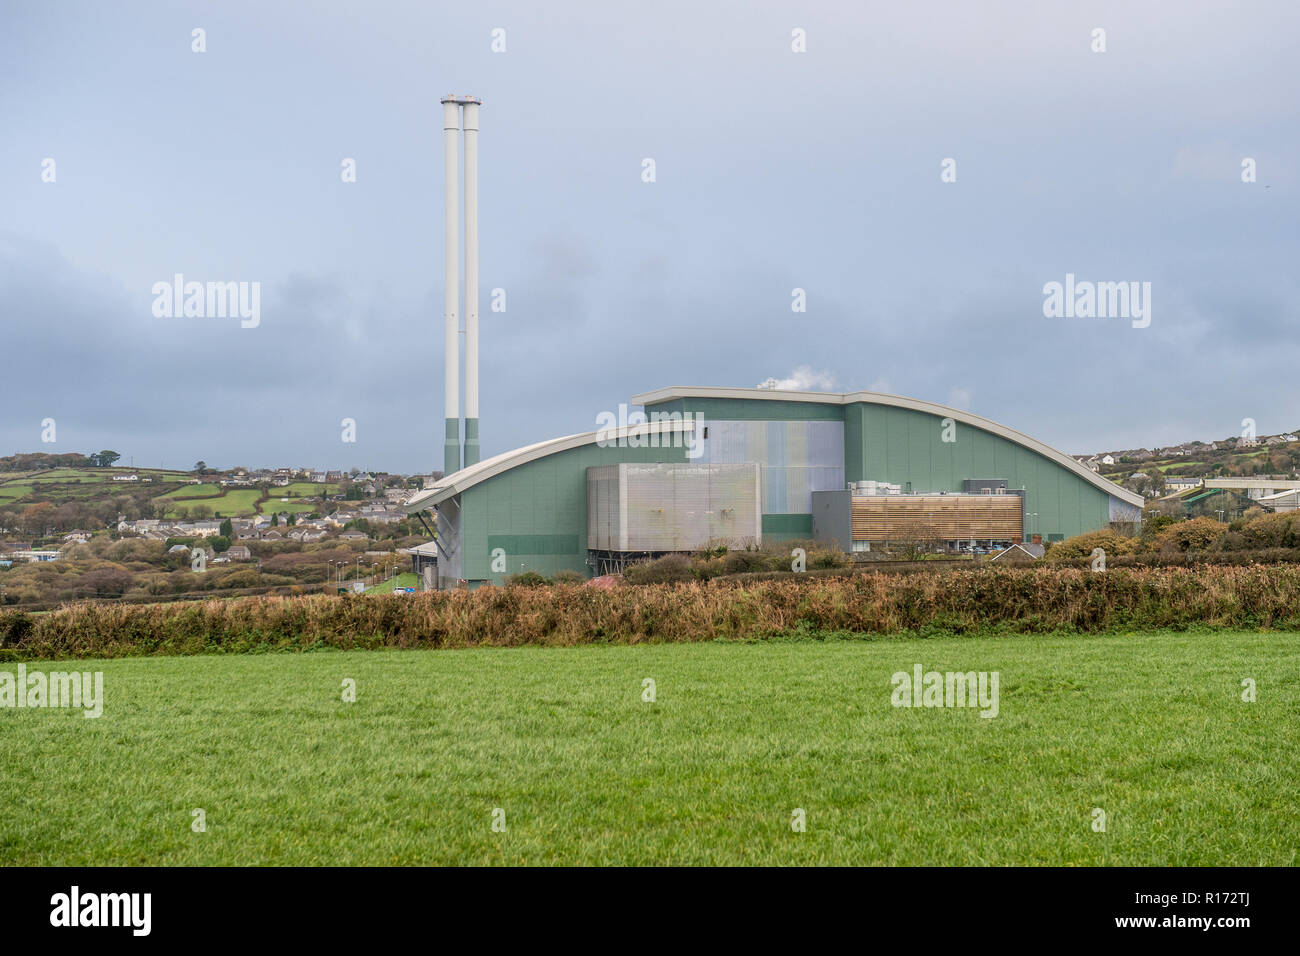 cornwall energy recover centre - Stock Image